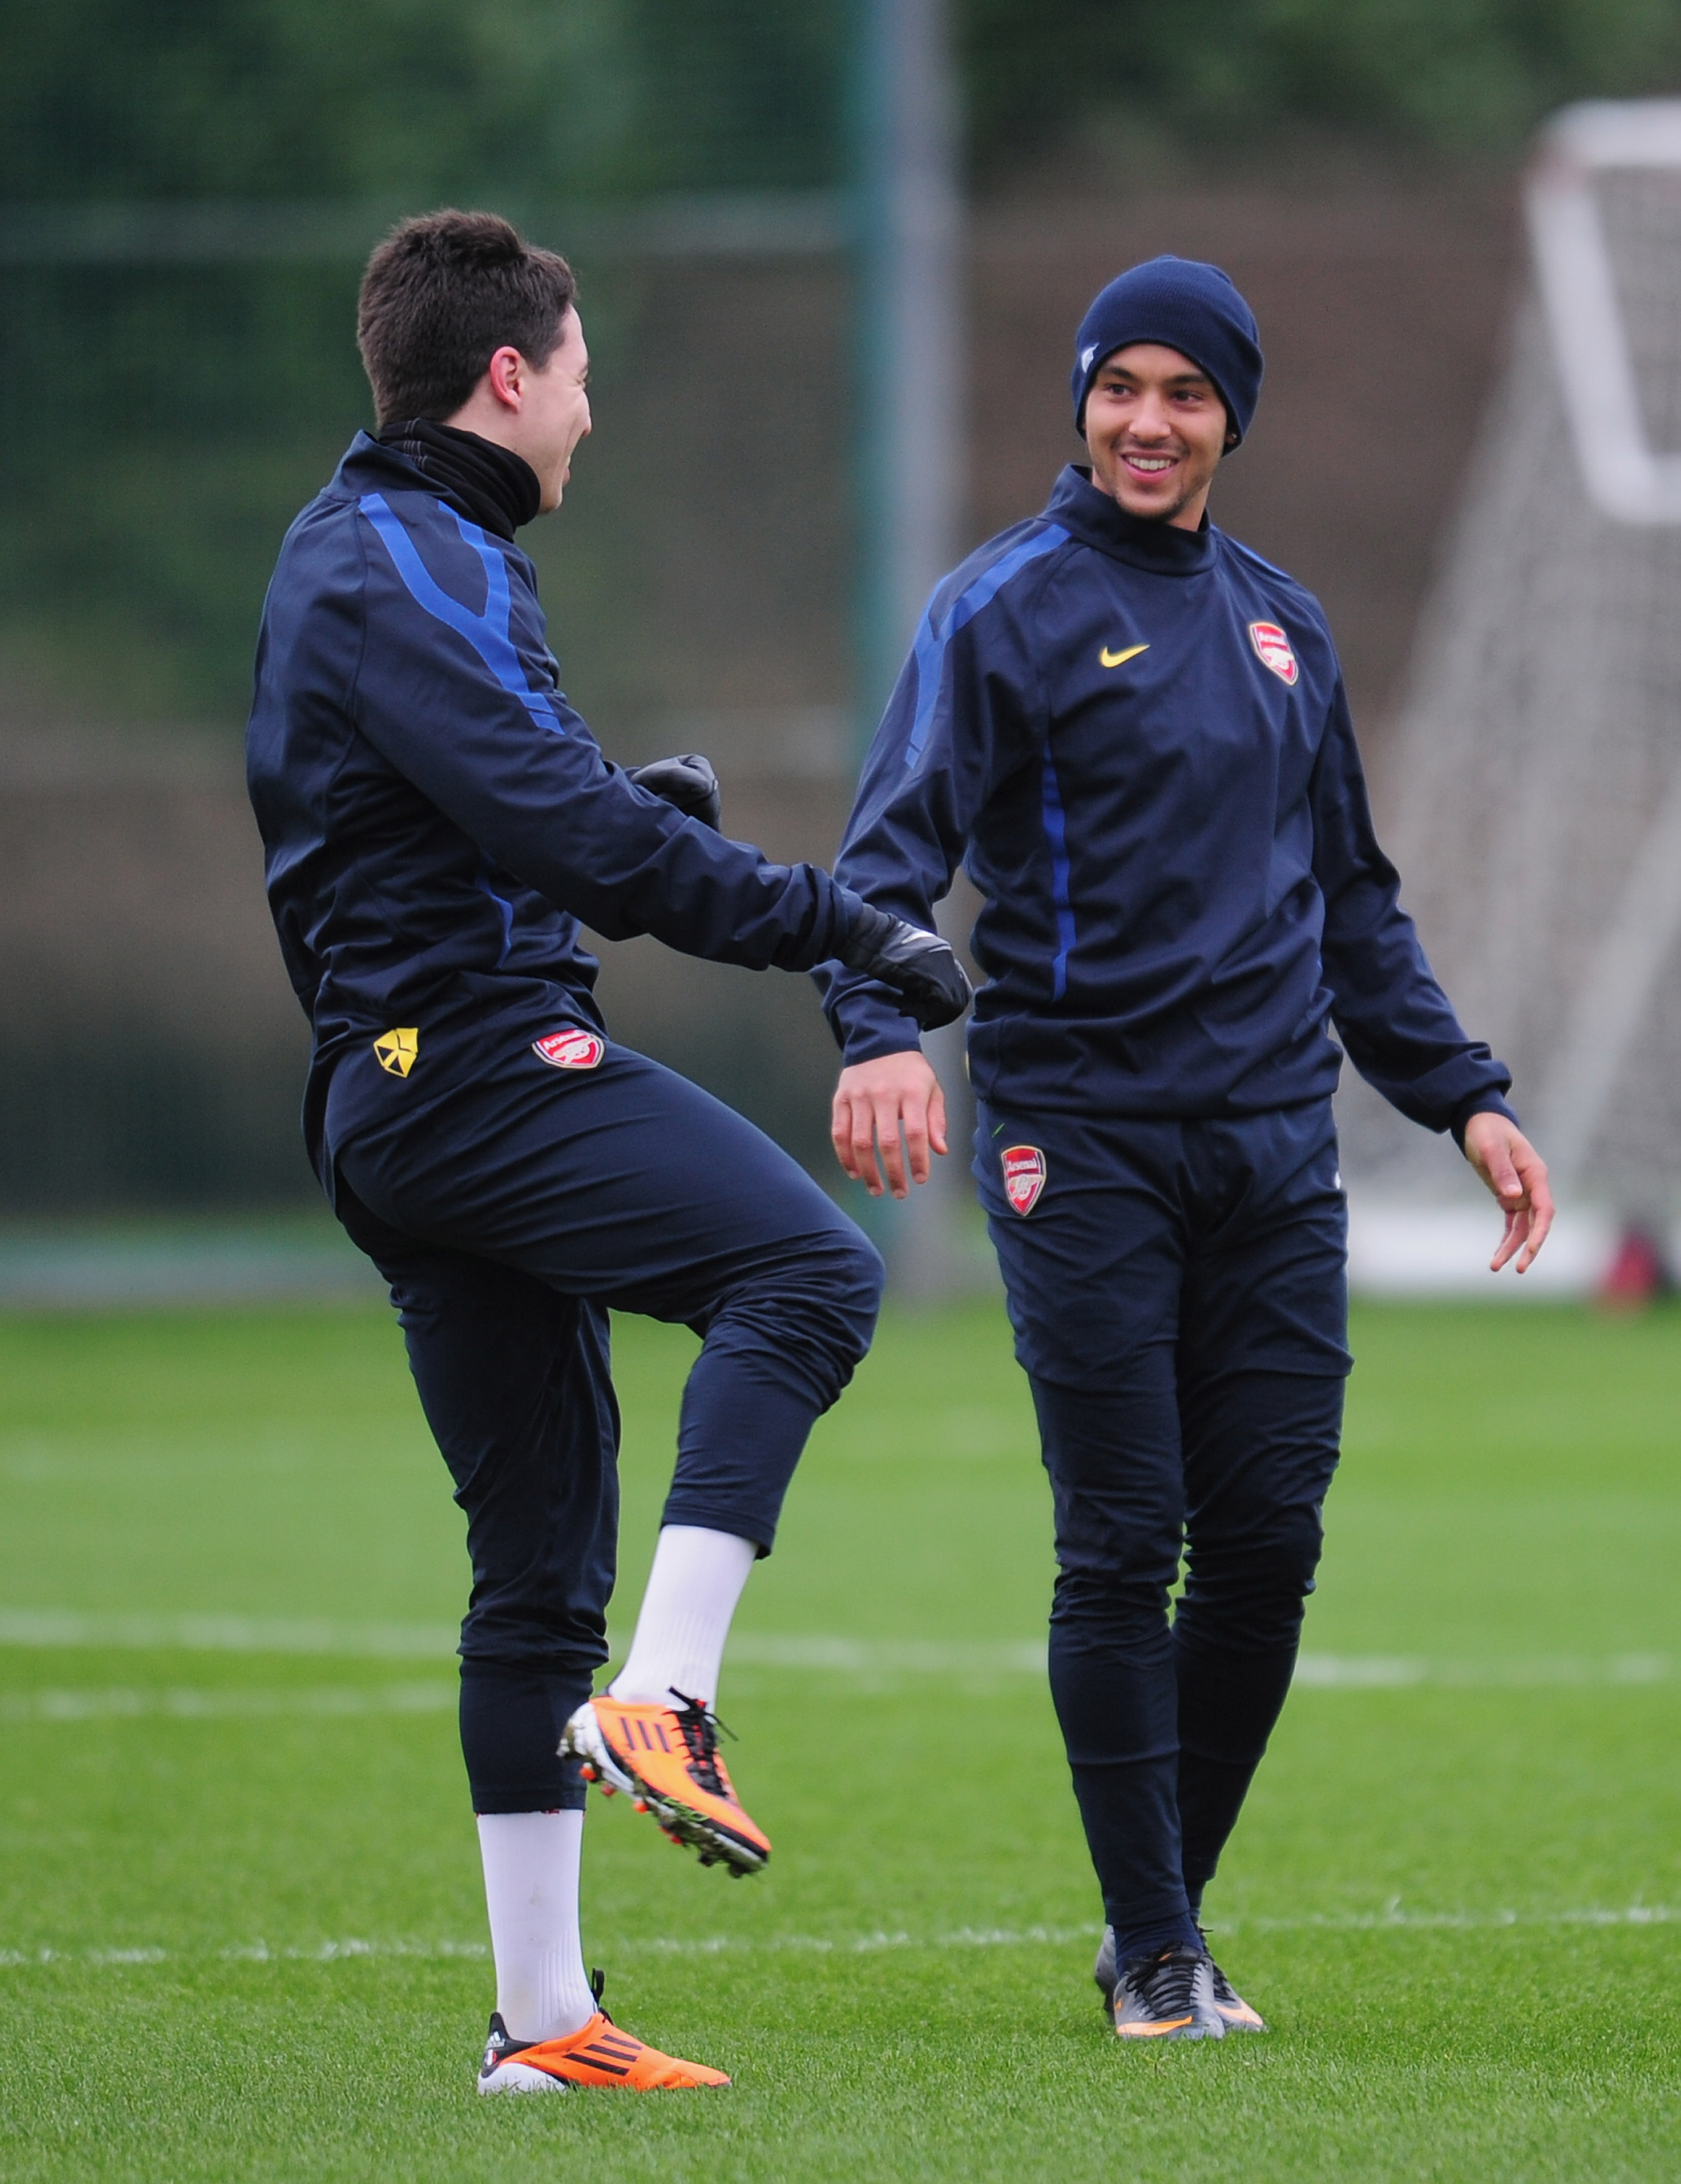 ST ALBANS, ENGLAND - FEBRUARY 15:  Theo Walcott and Samir Nasri of Arsenal warm-up during training at London Colney on February 15, 2011 in St Albans, England.  (Photo by Shaun Botterill/Getty Images)